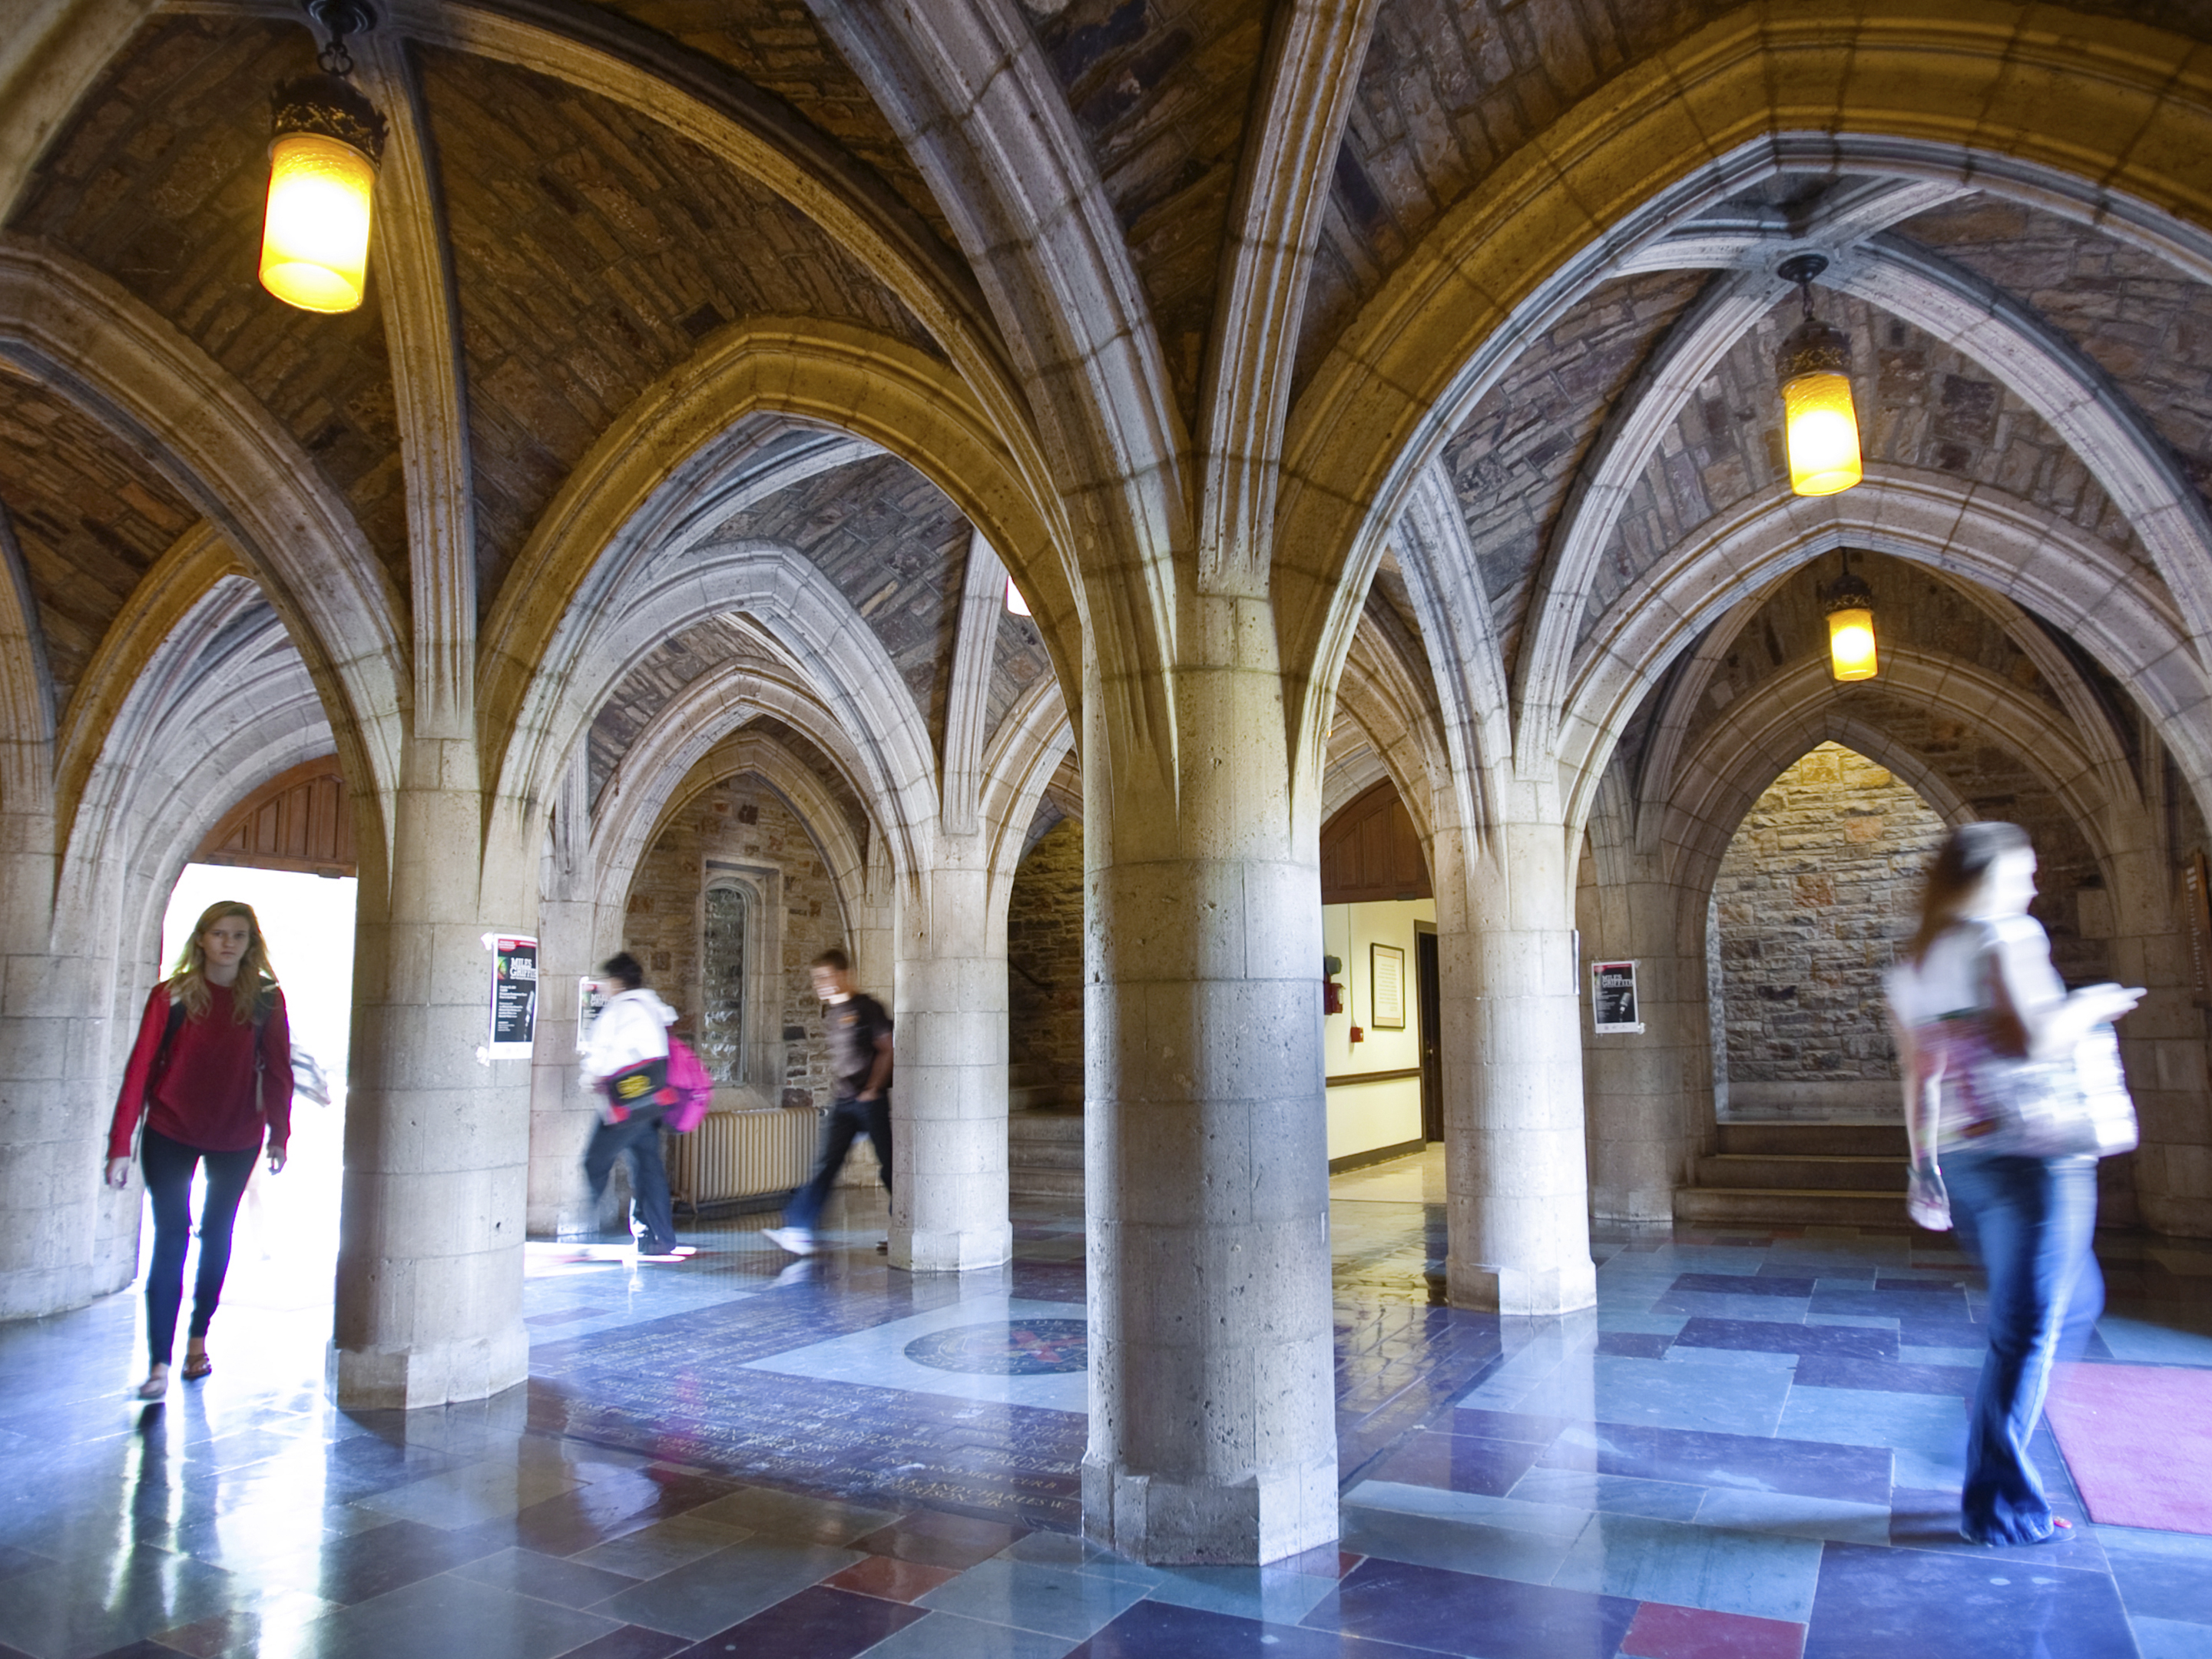 Students come in and out of the Palmer Hall cloister